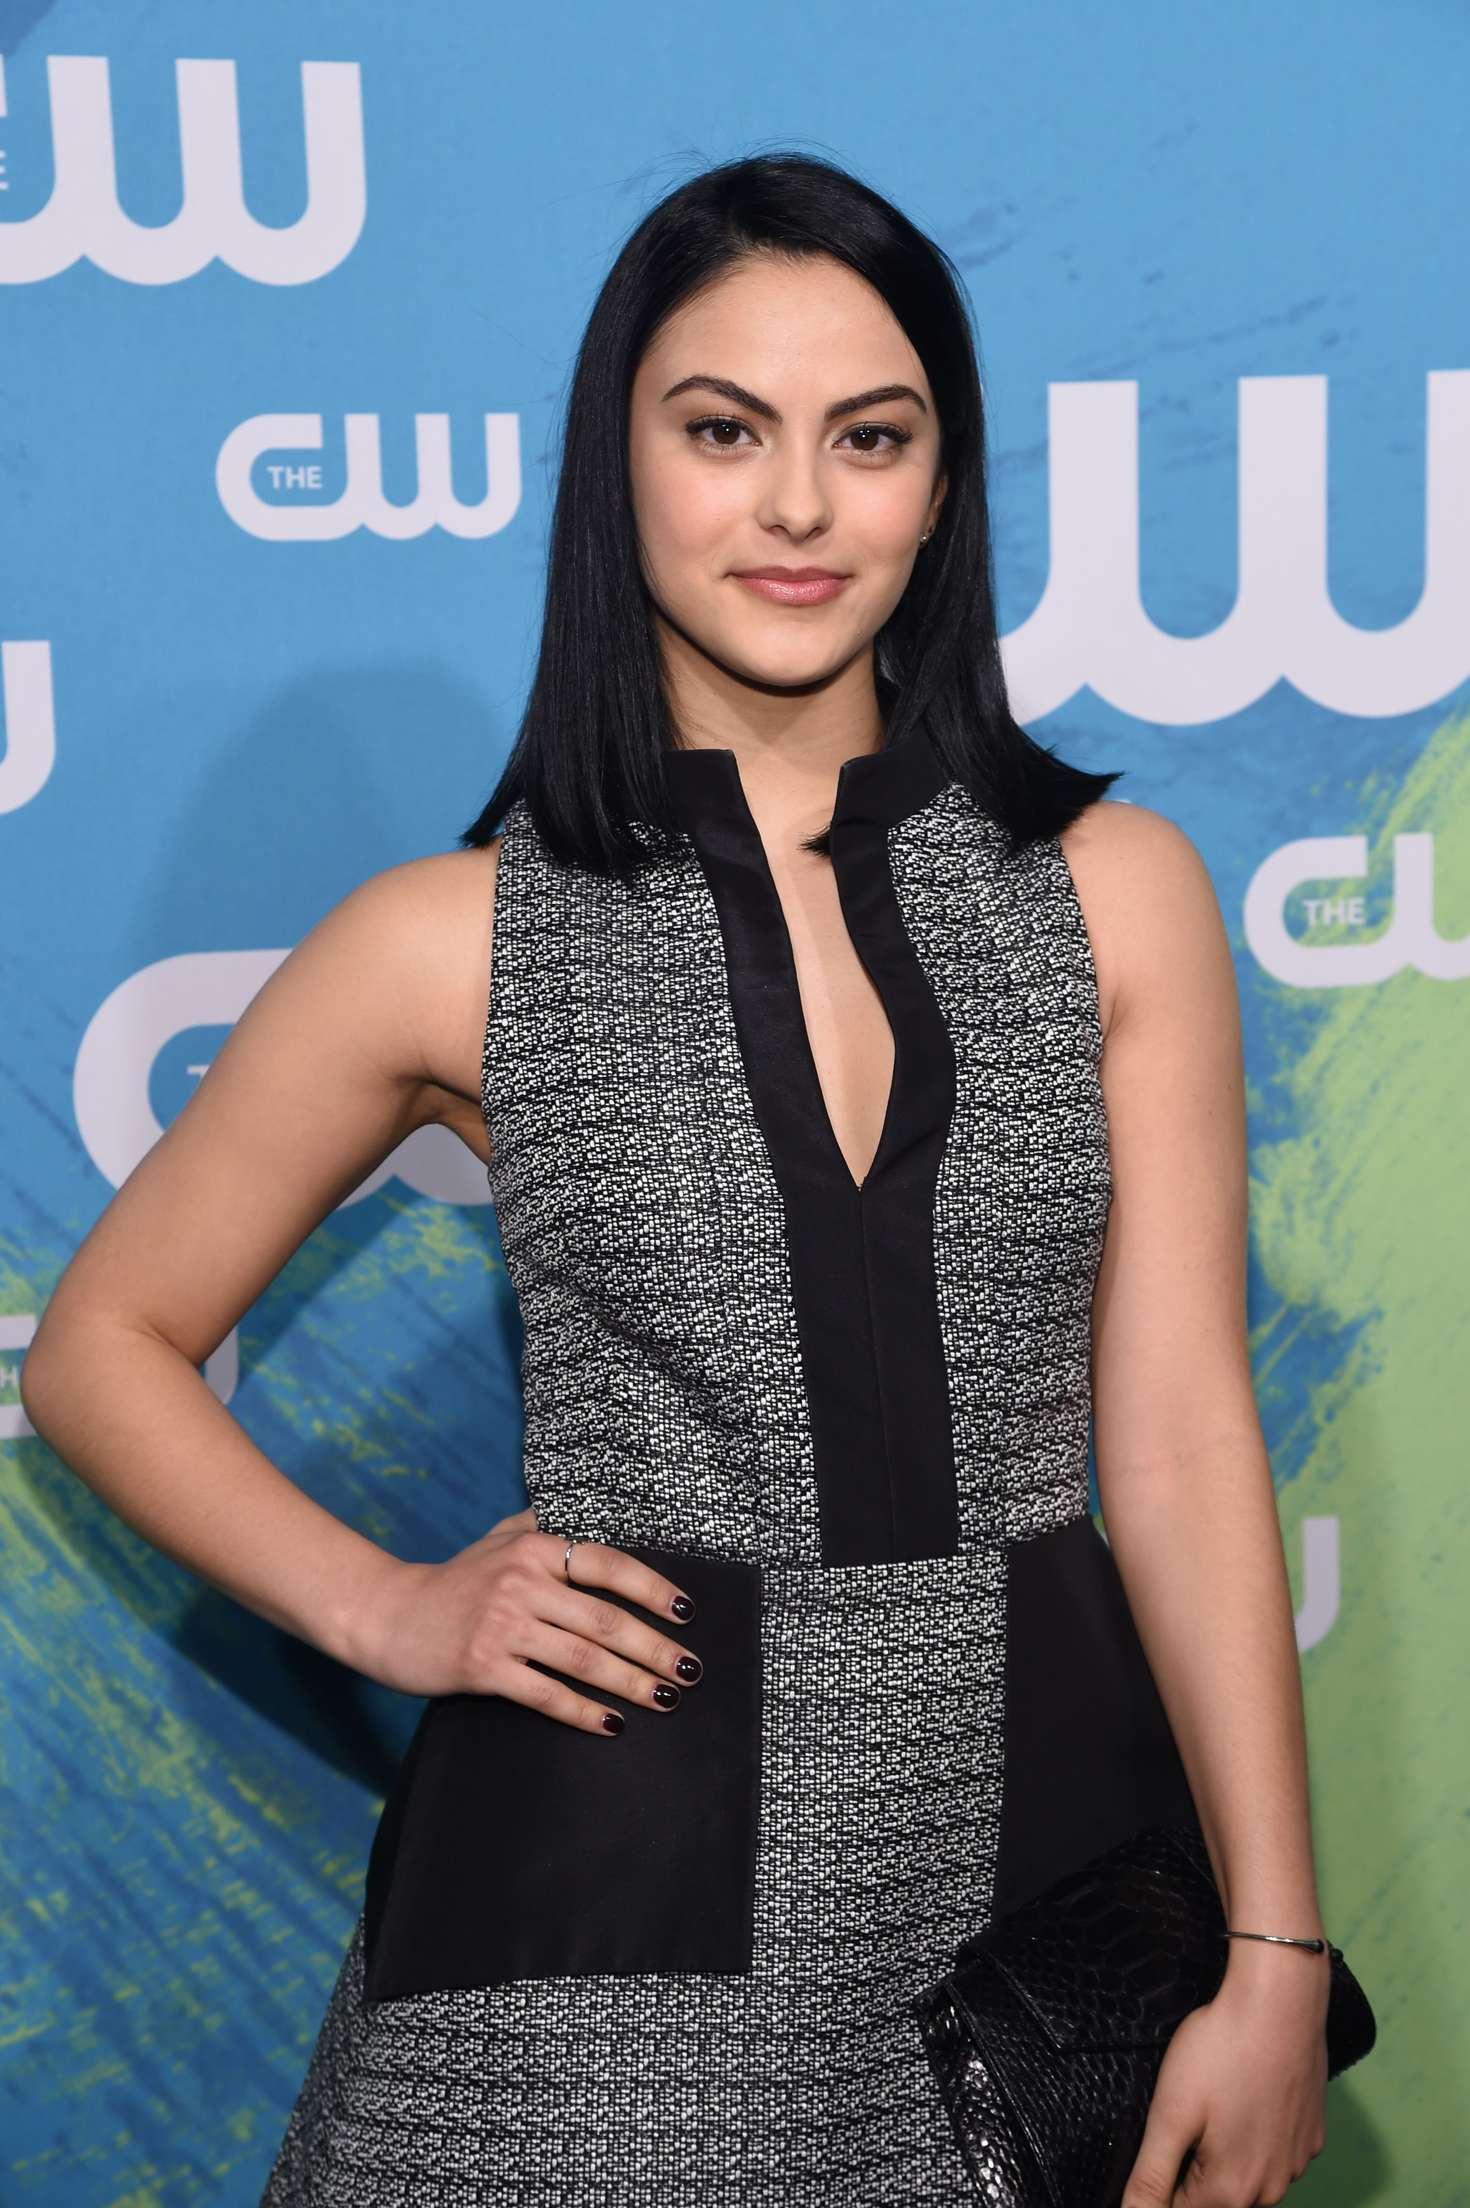 Camila Mendes - The CW...